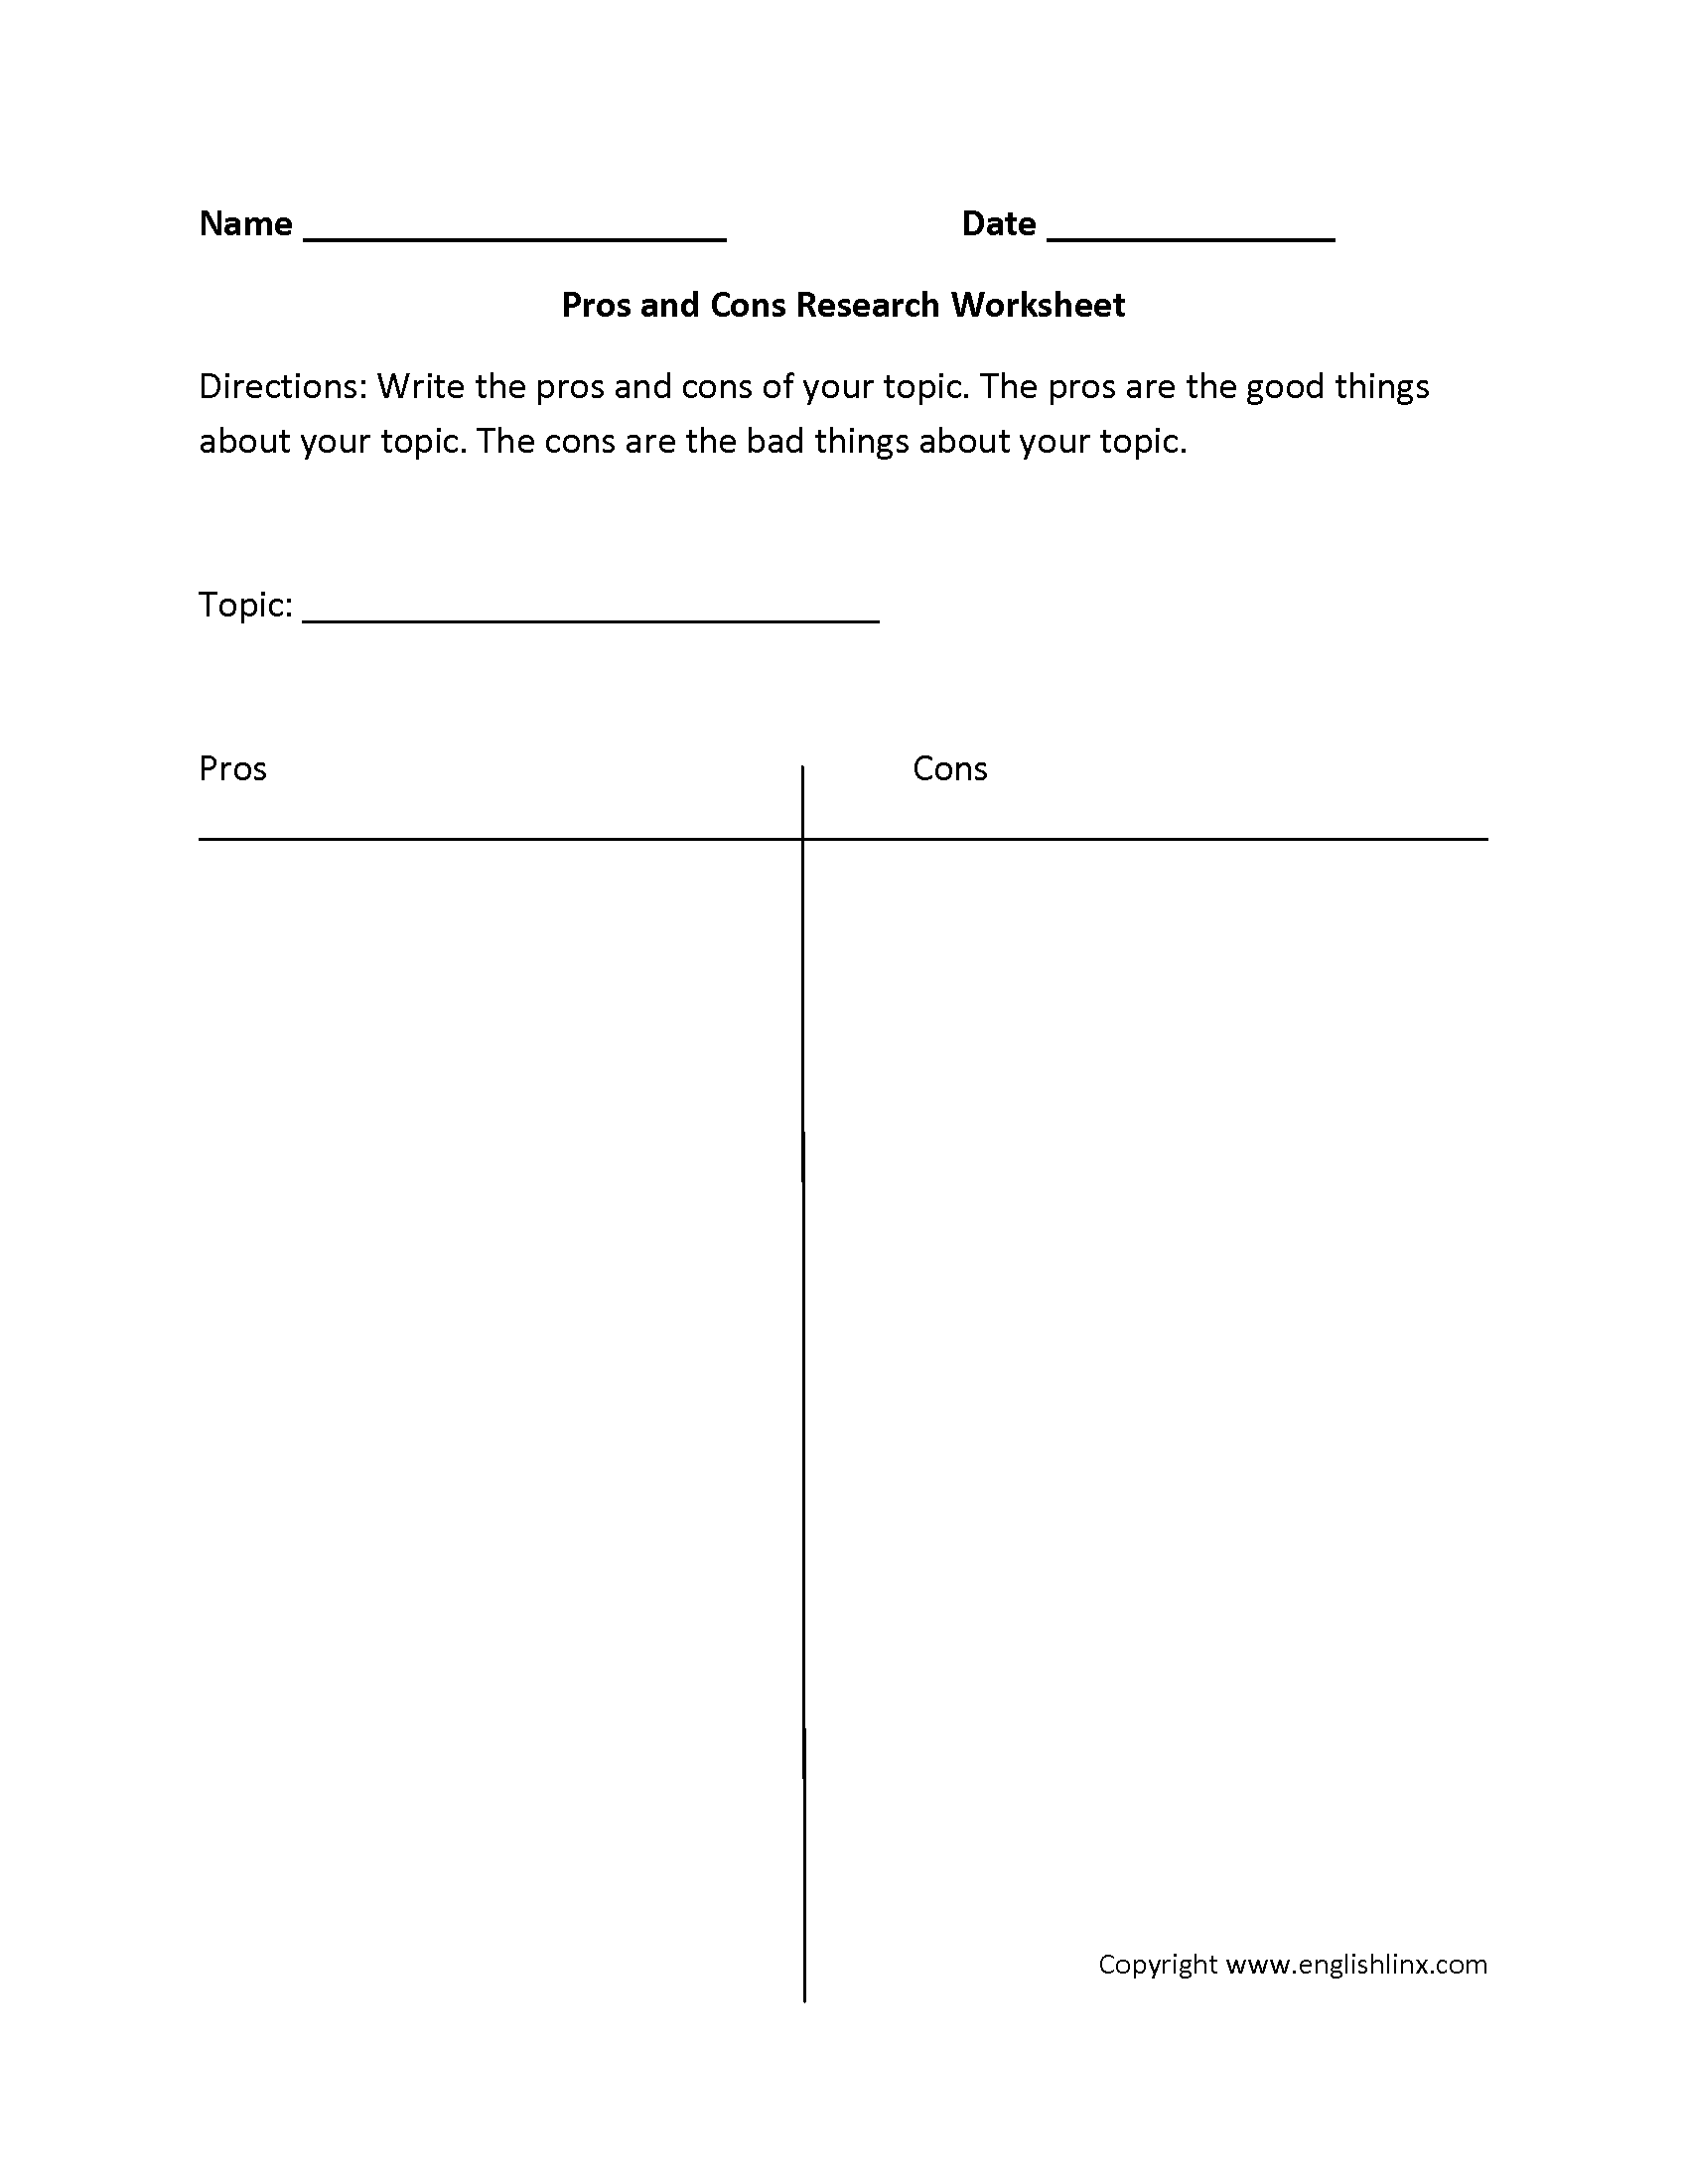 Health Cons And Worksheet Pros Mental